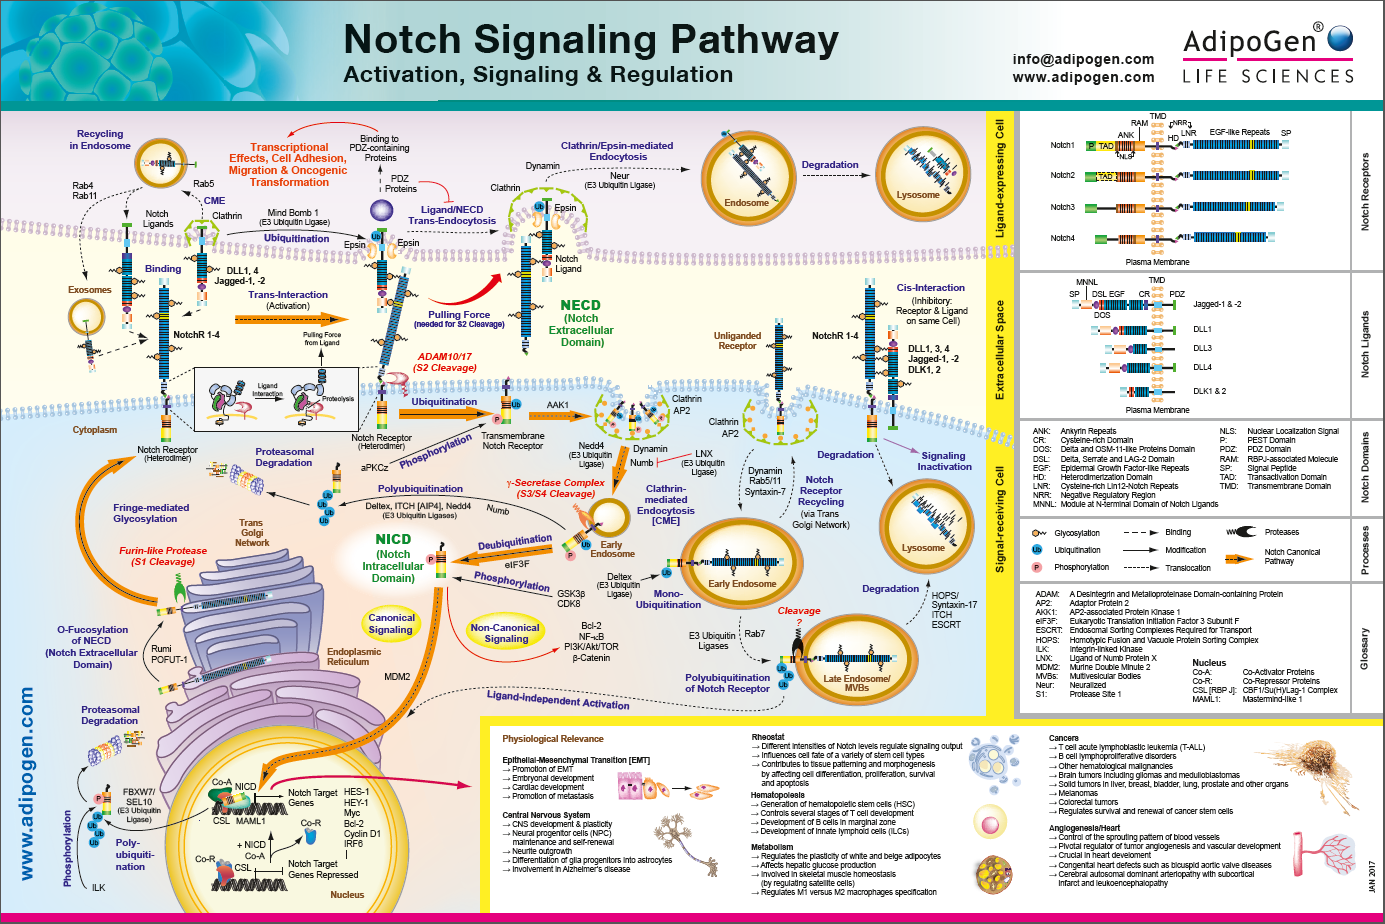 Notch Signaling Pathway - Activation, Signaling and Regulation